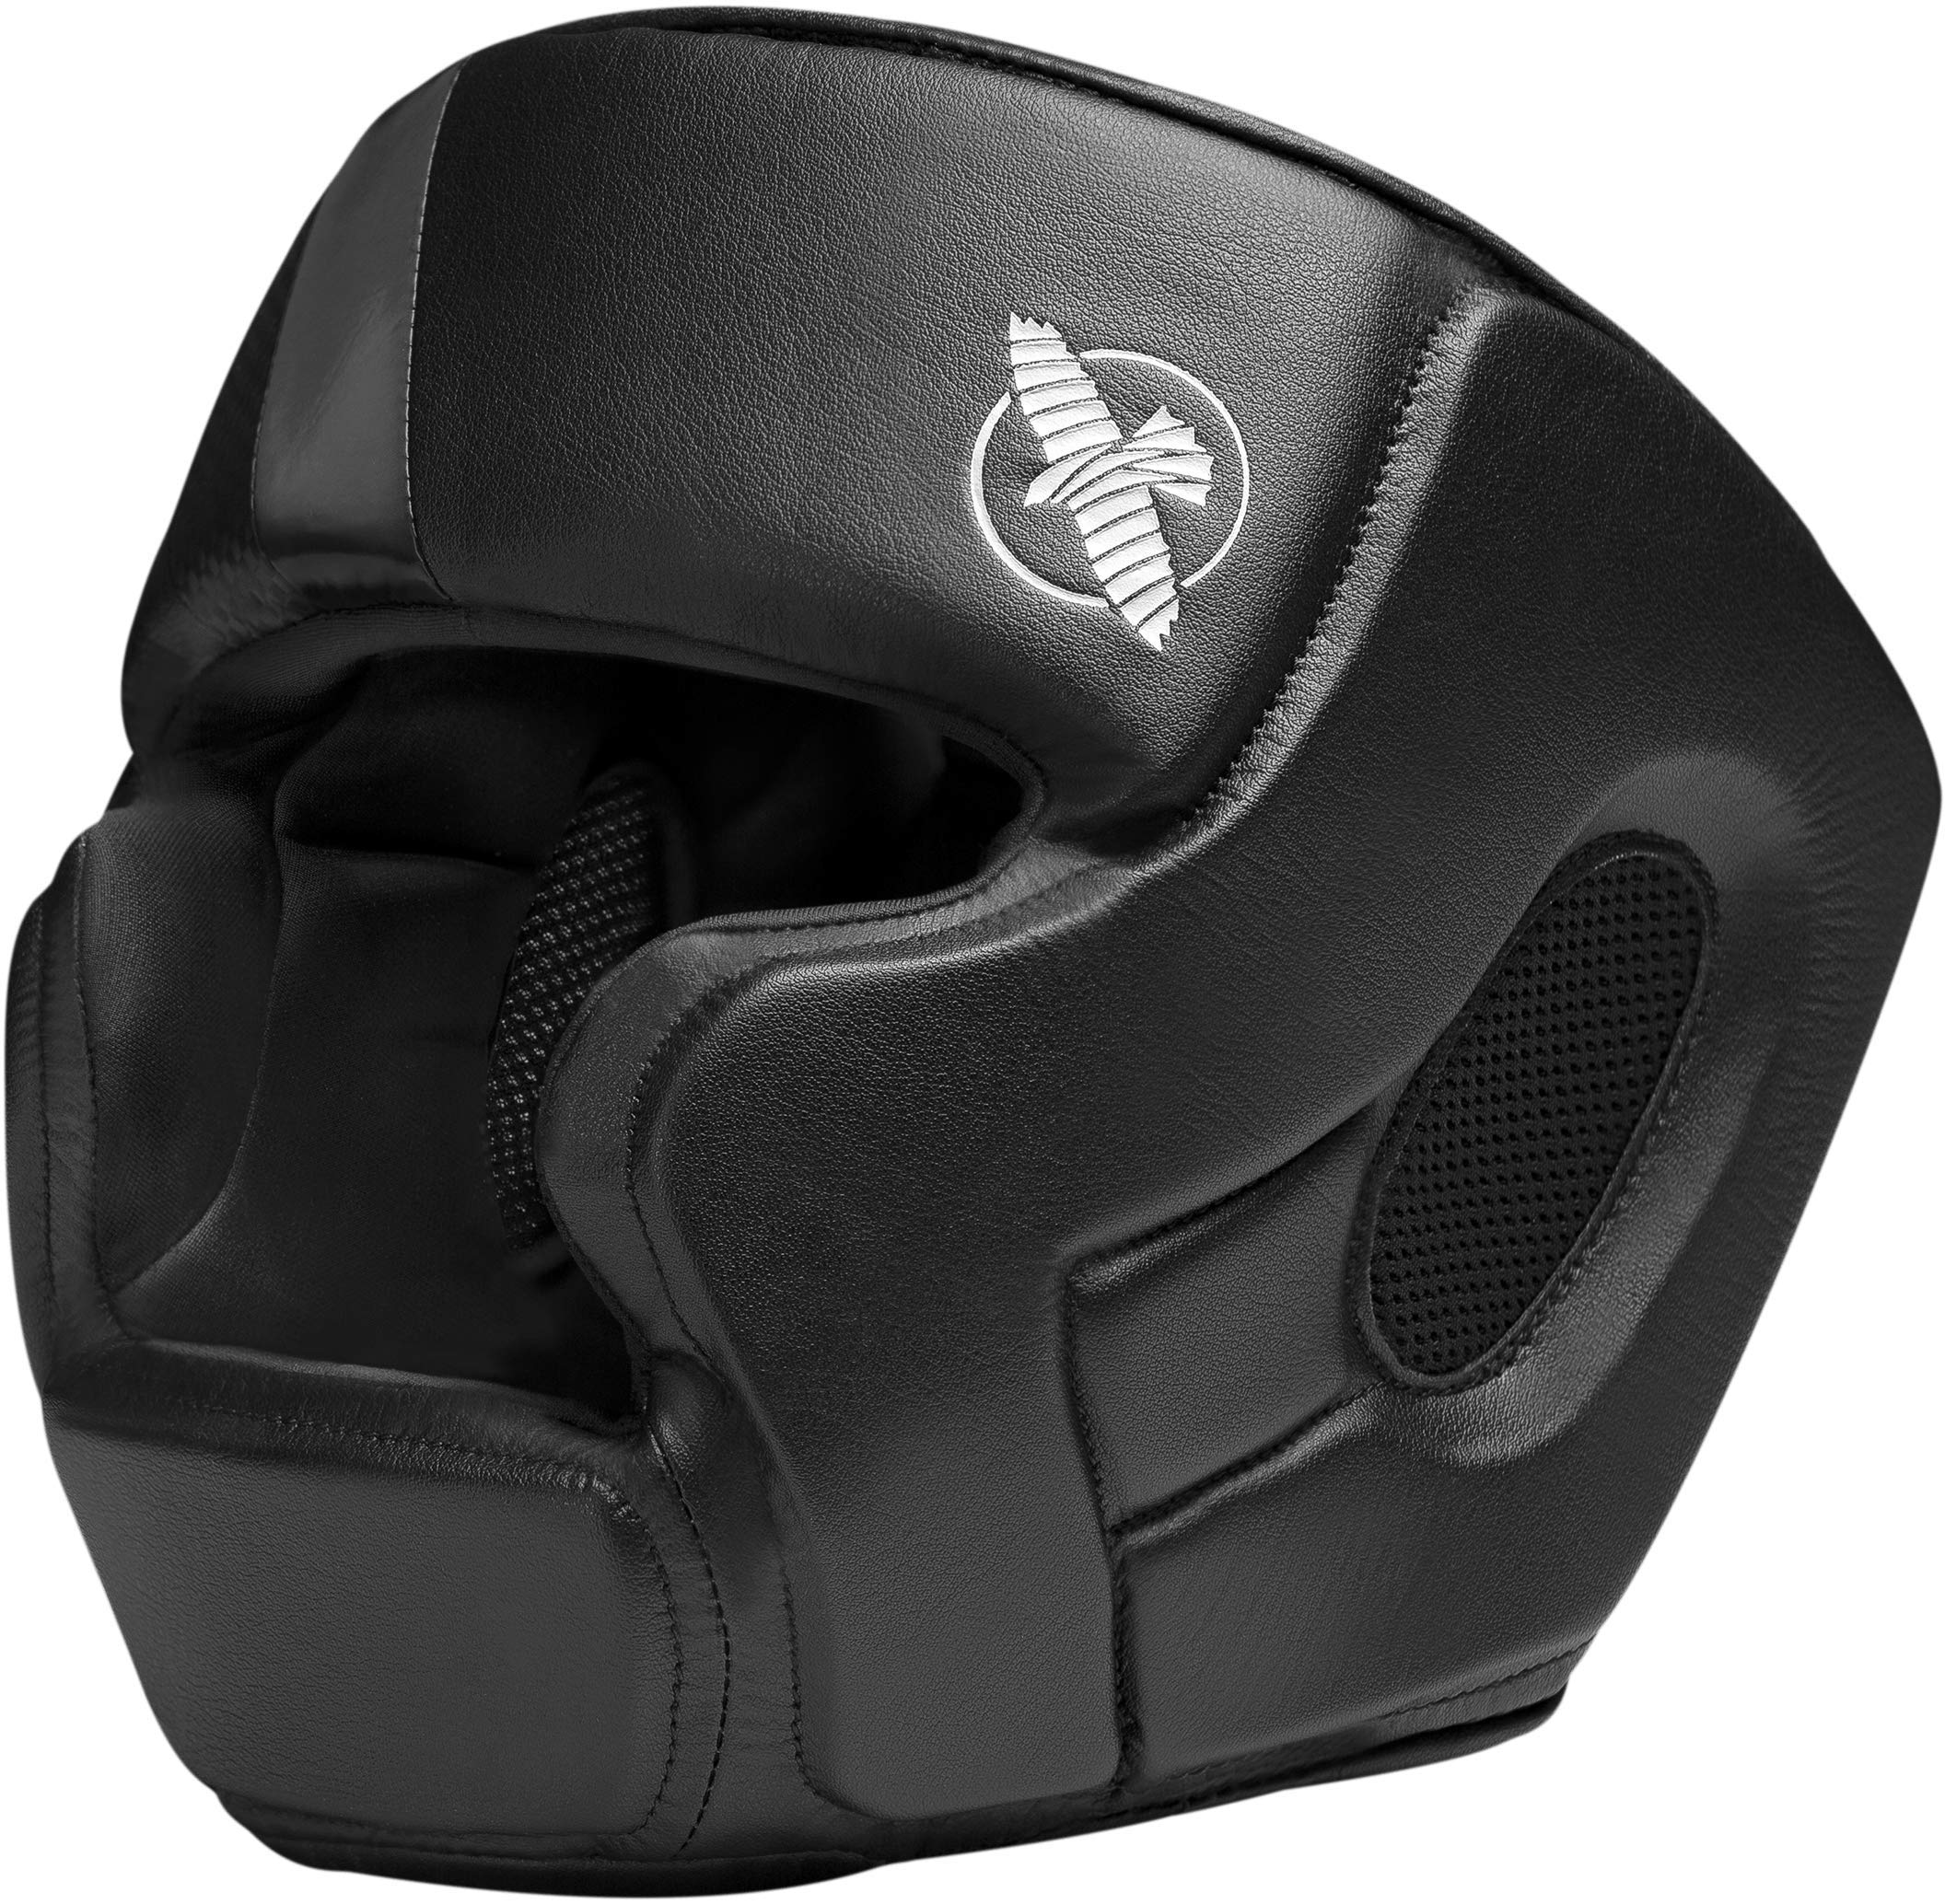 Hayabusa T3 MMA, Boxing and Kickboxing Headguard